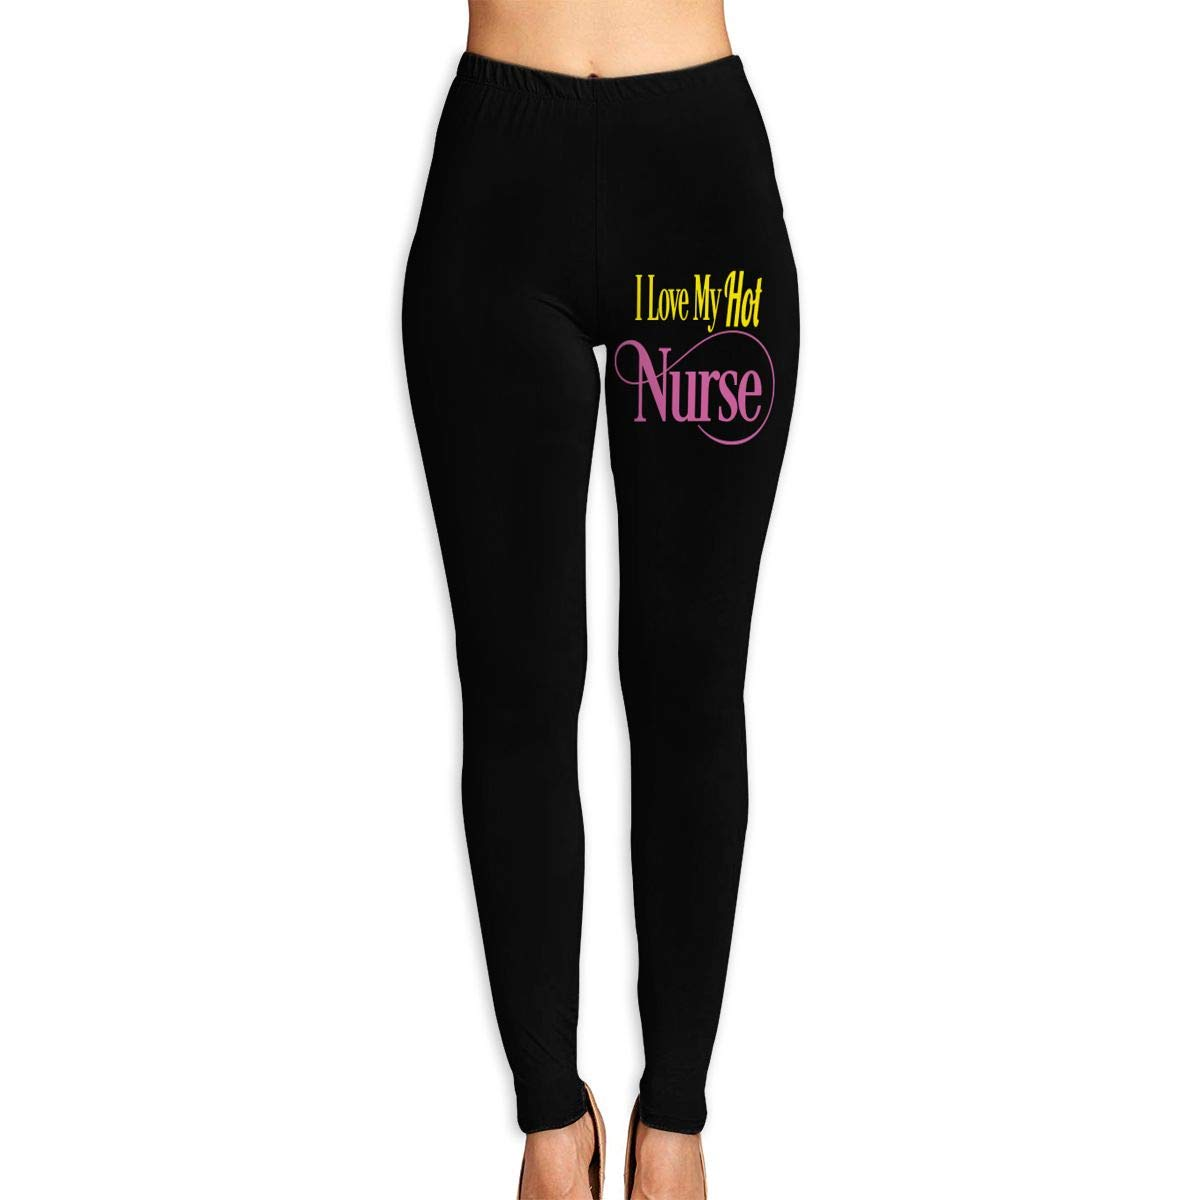 I Love My Hot Nurse Wife Girlfriend High Waist Yoga Pants Tummy Control Workout Running Sports Pants Women's Stretch Yoga Leggings